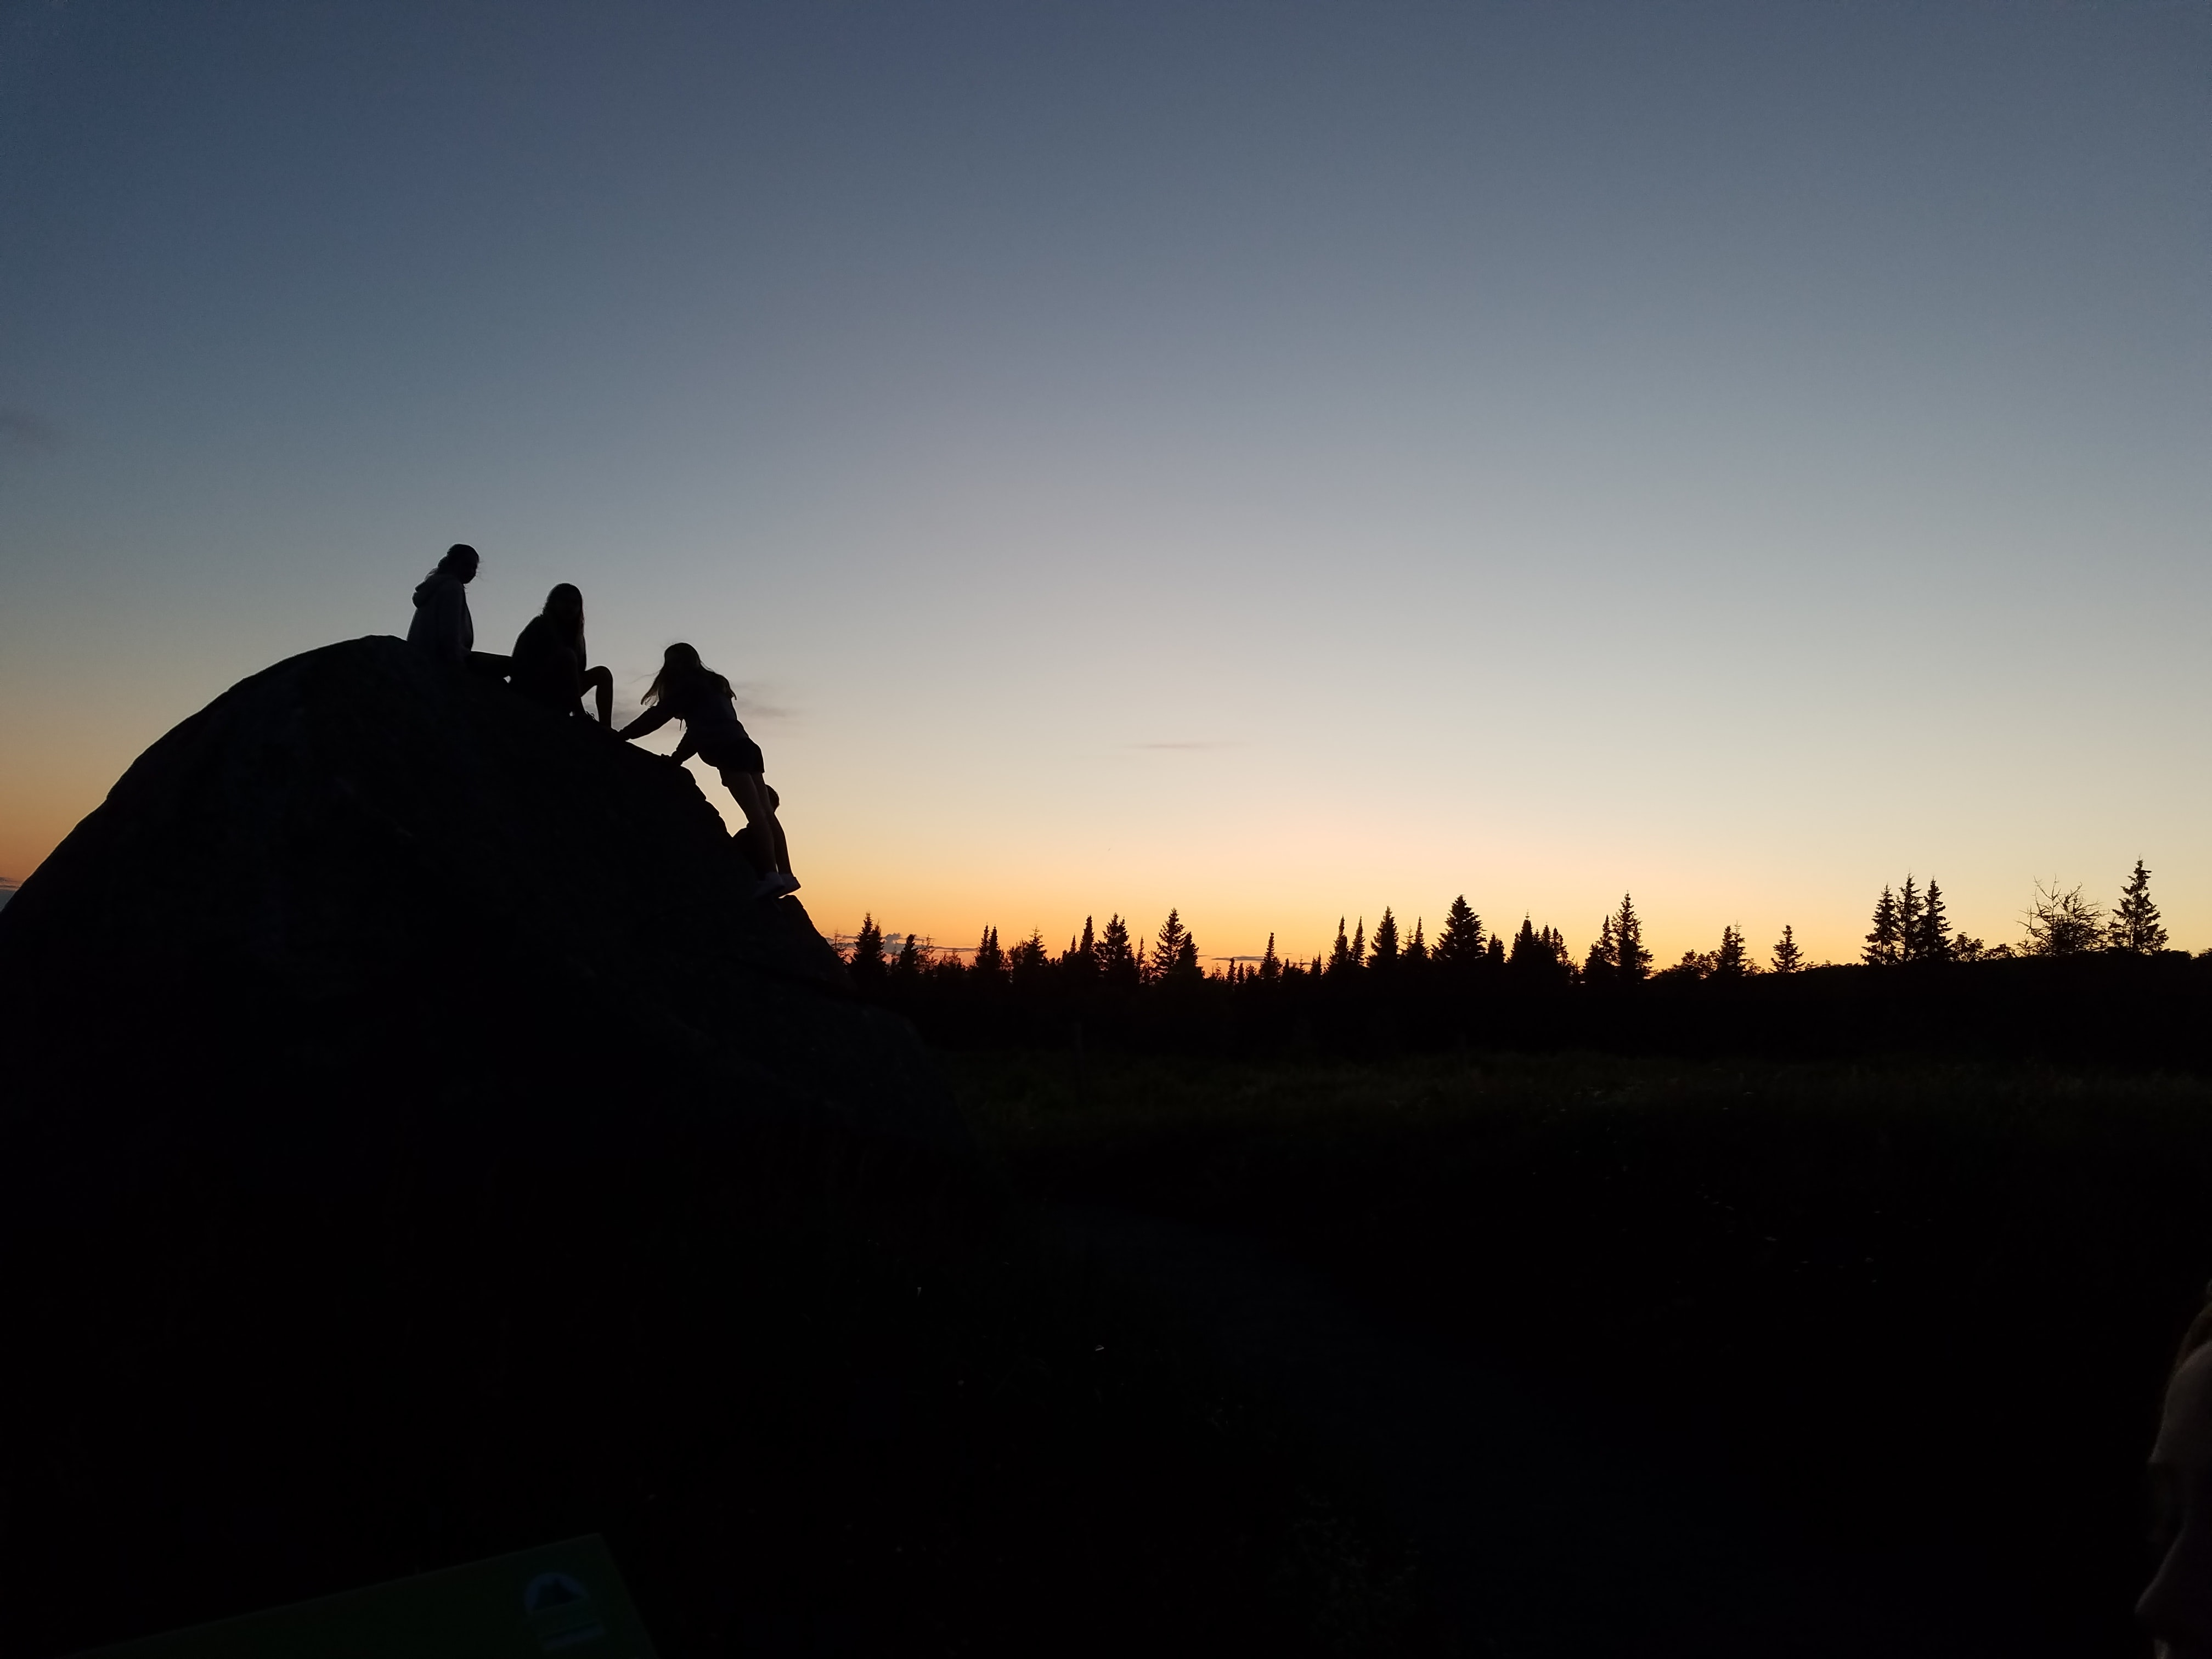 silhouette of three people on hill near trees during sunset